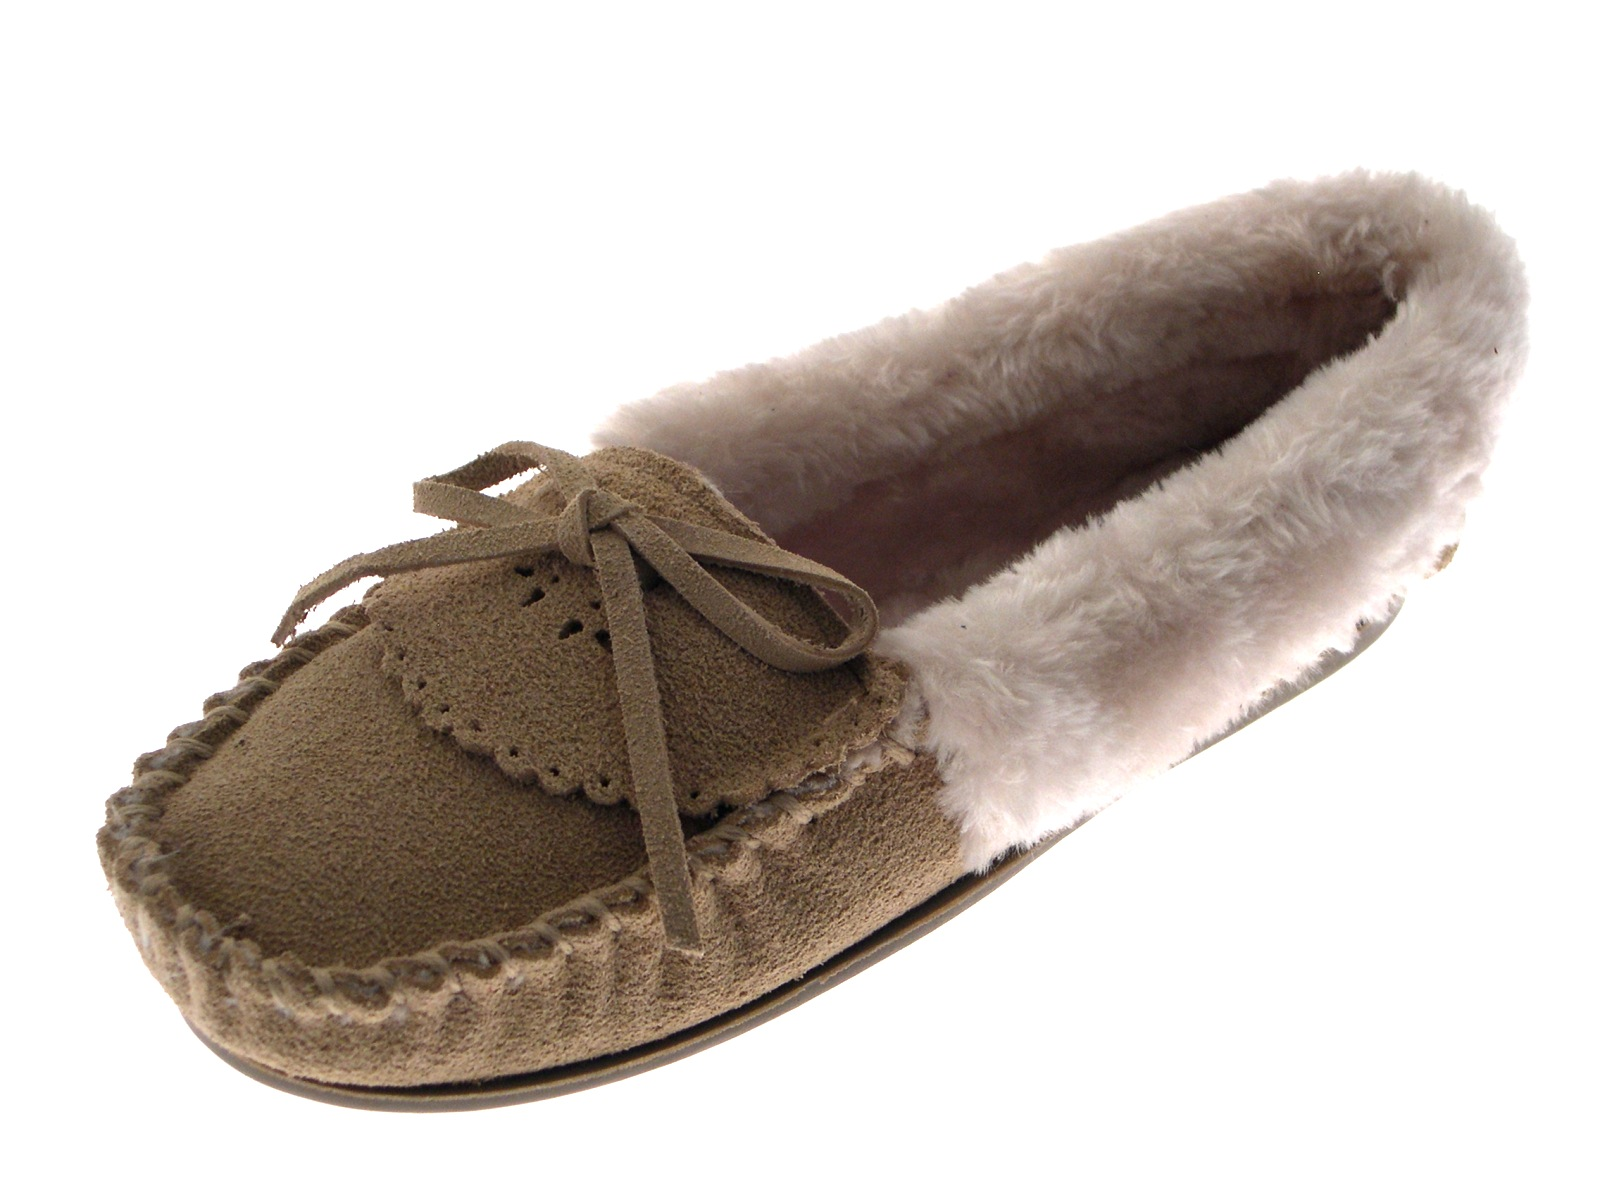 Womens Moccasins Columbus Day Sale: Save up to 50% off! Shop fabulousdown4allb7.cf's huge selection of Moccasins for Women and save big! Over styles available, including UGG Dakota Slipper, UGG Ansley Moccasin, Minnetonka Cally Slipper, Vionic Juniper Moccasin, and more. FREE Shipping and Exchanges, and a % price guarantee.